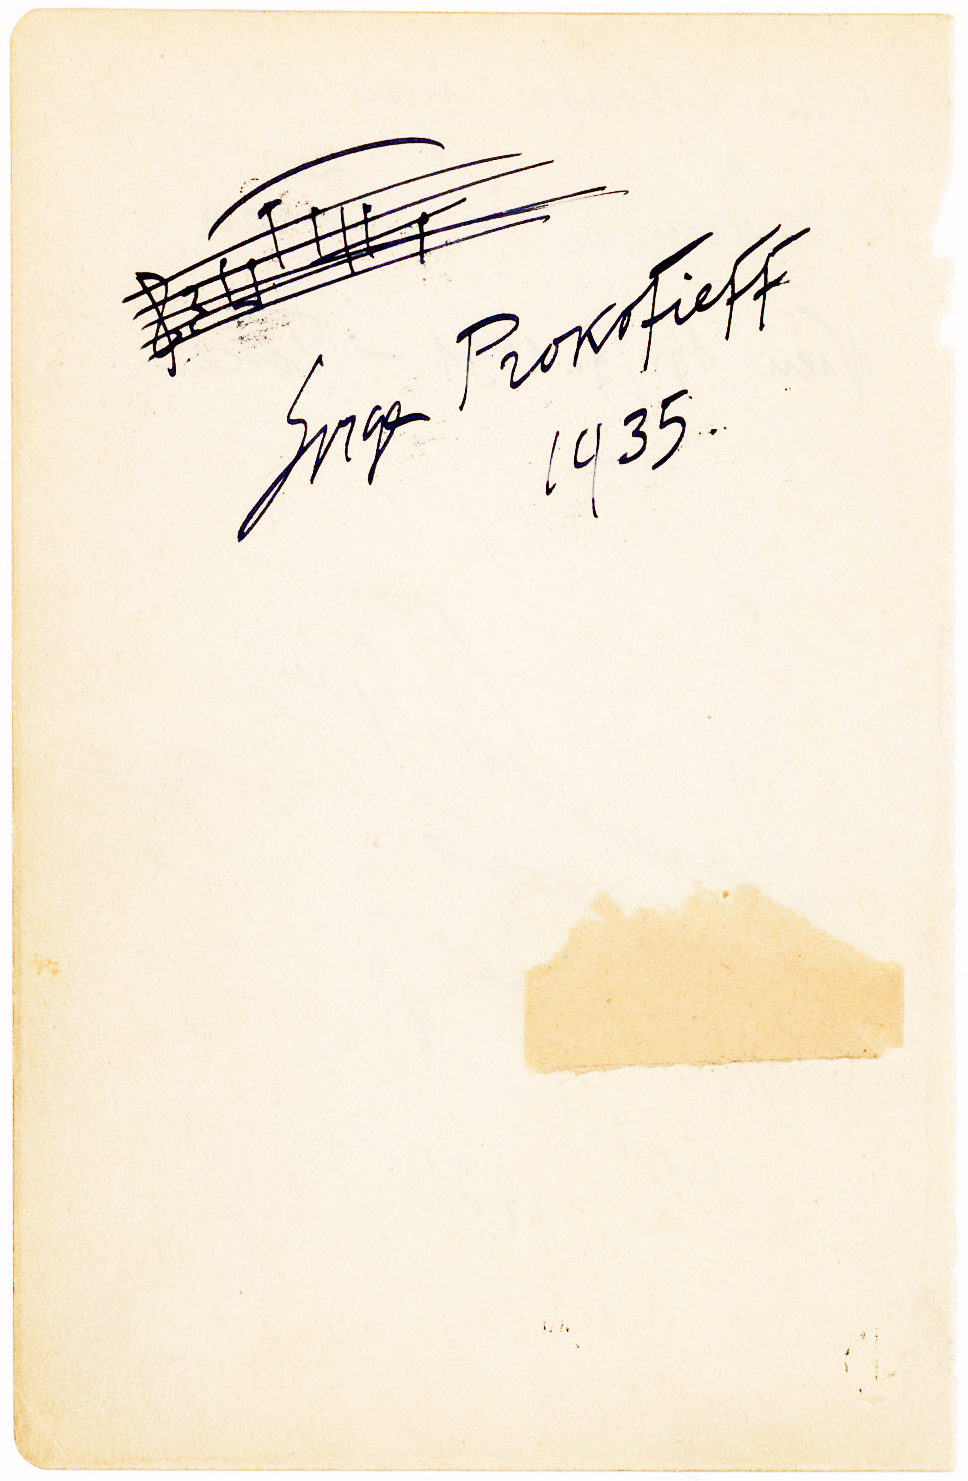 Boldly Penned Musical Quotation from the Opening of His Popular Piano Concerto No. 3